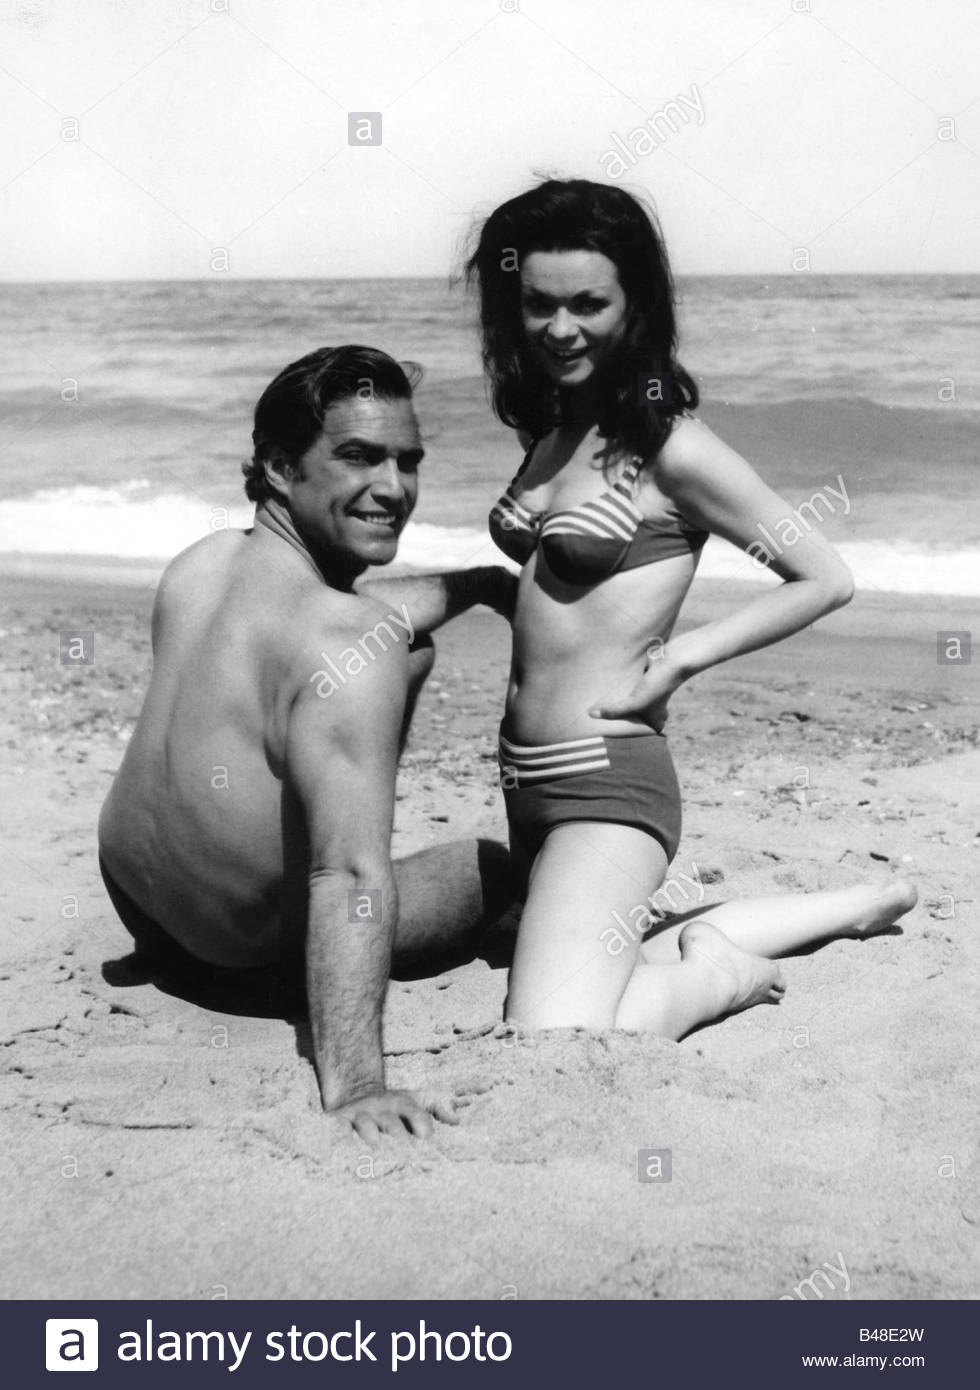 Versini, Marie, * 10.8.1940, French actress, with Gustavo Rojo, full length, 1960s, 60s, sand, sandy beach, two - Stock Image